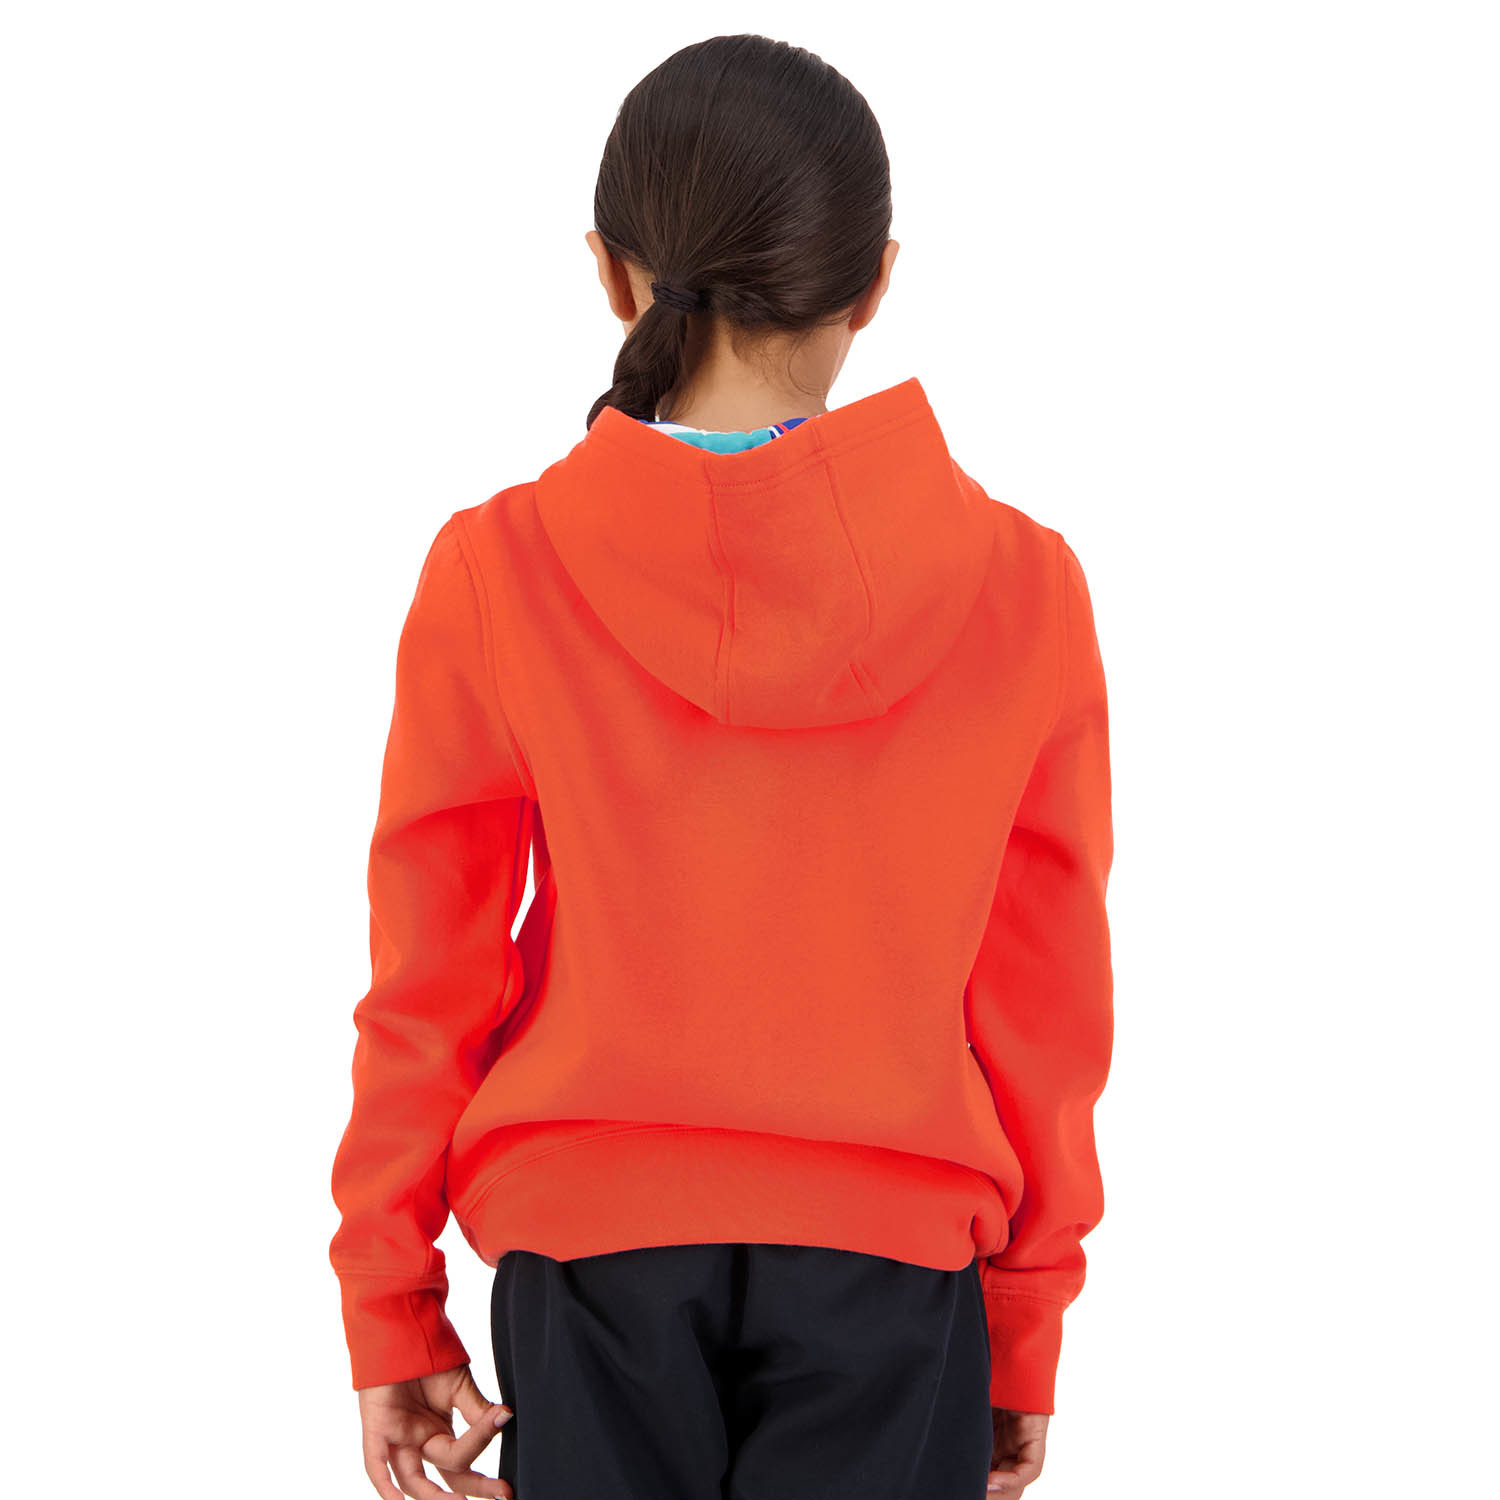 Girls Uglies Hoody - Hot Coral (Size 10) image